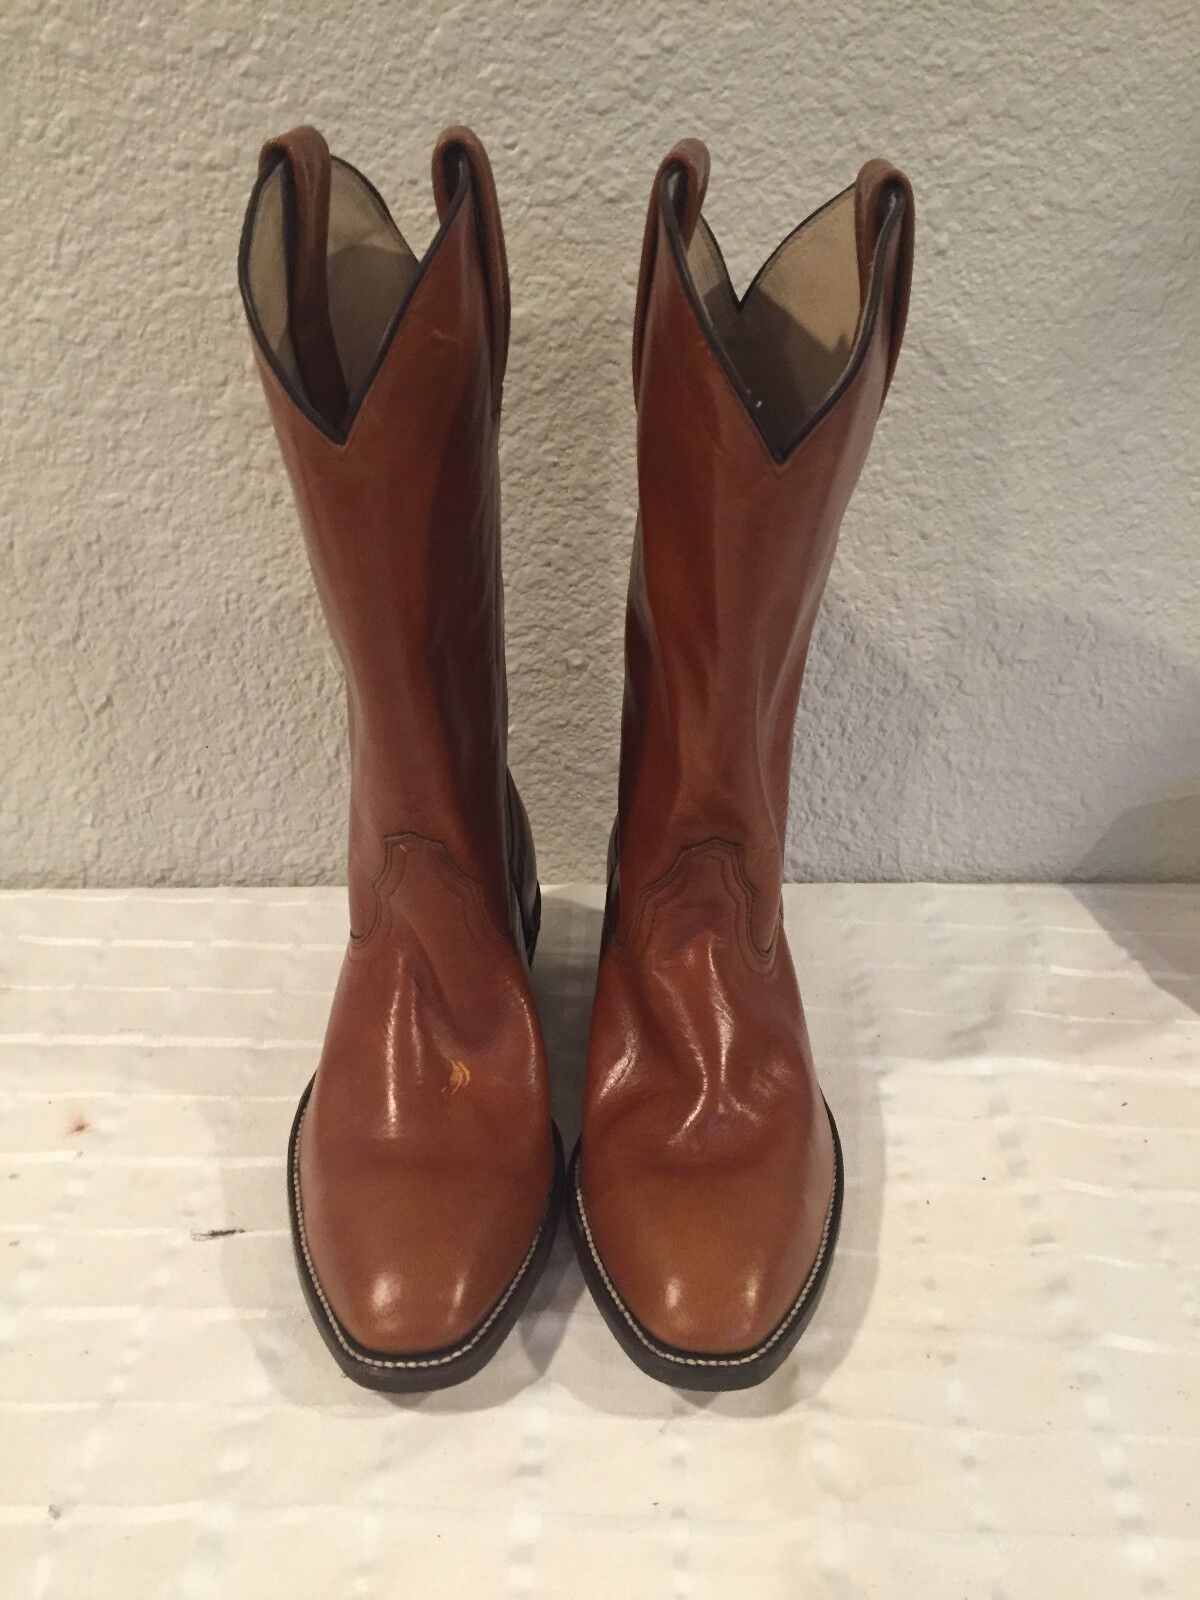 New Frye Brown Smooth Leather Cowboy Western Men's Boots 9EE Made in USA